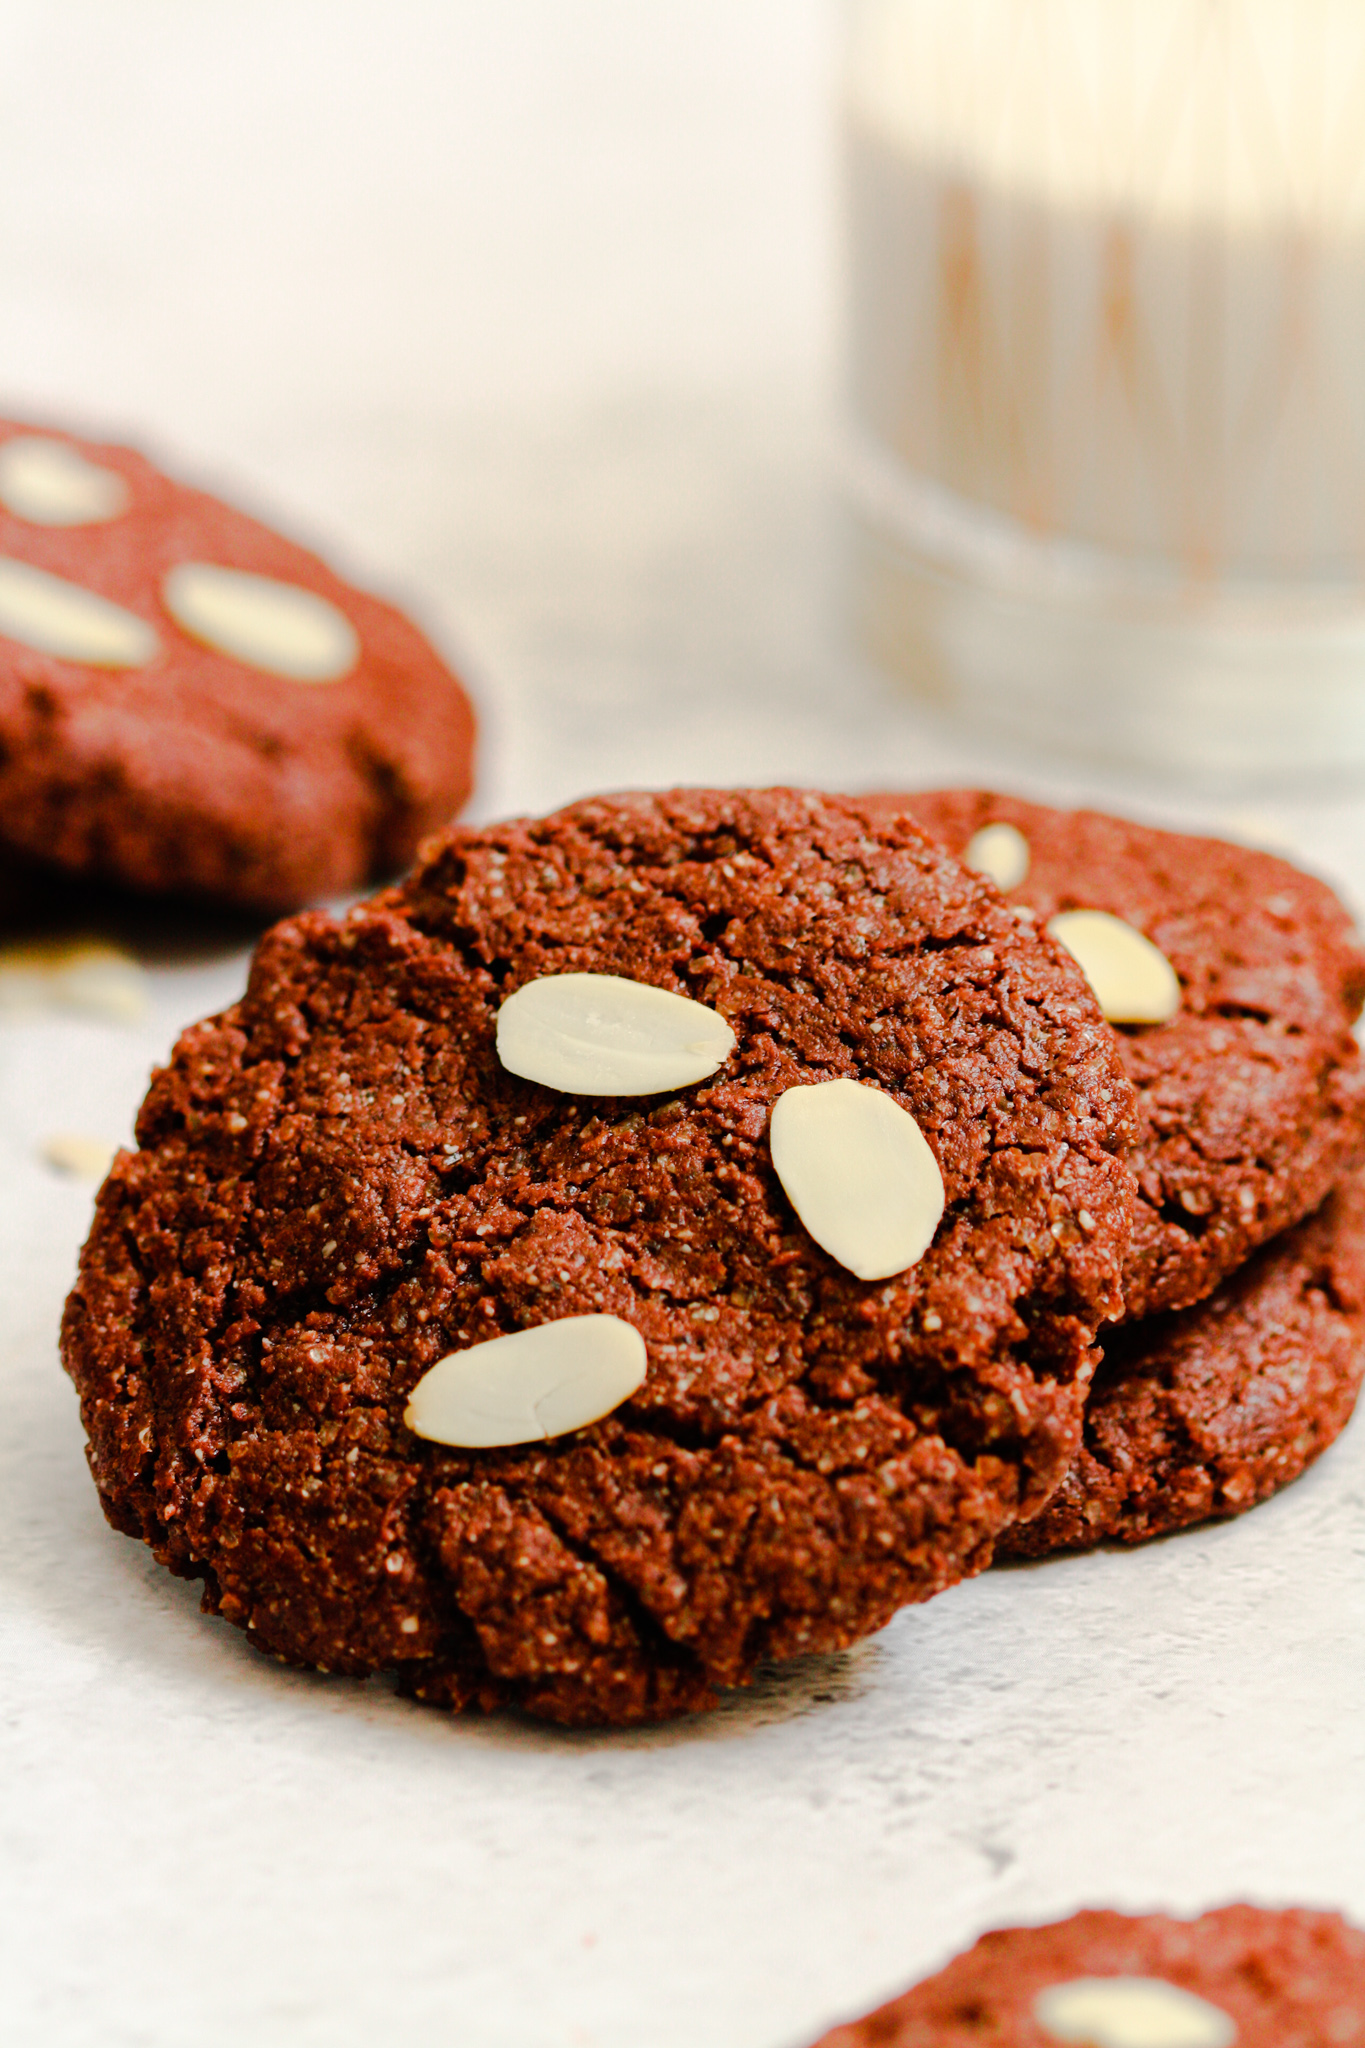 Easy Vegan & Gluten-Free Chocolate Cookies